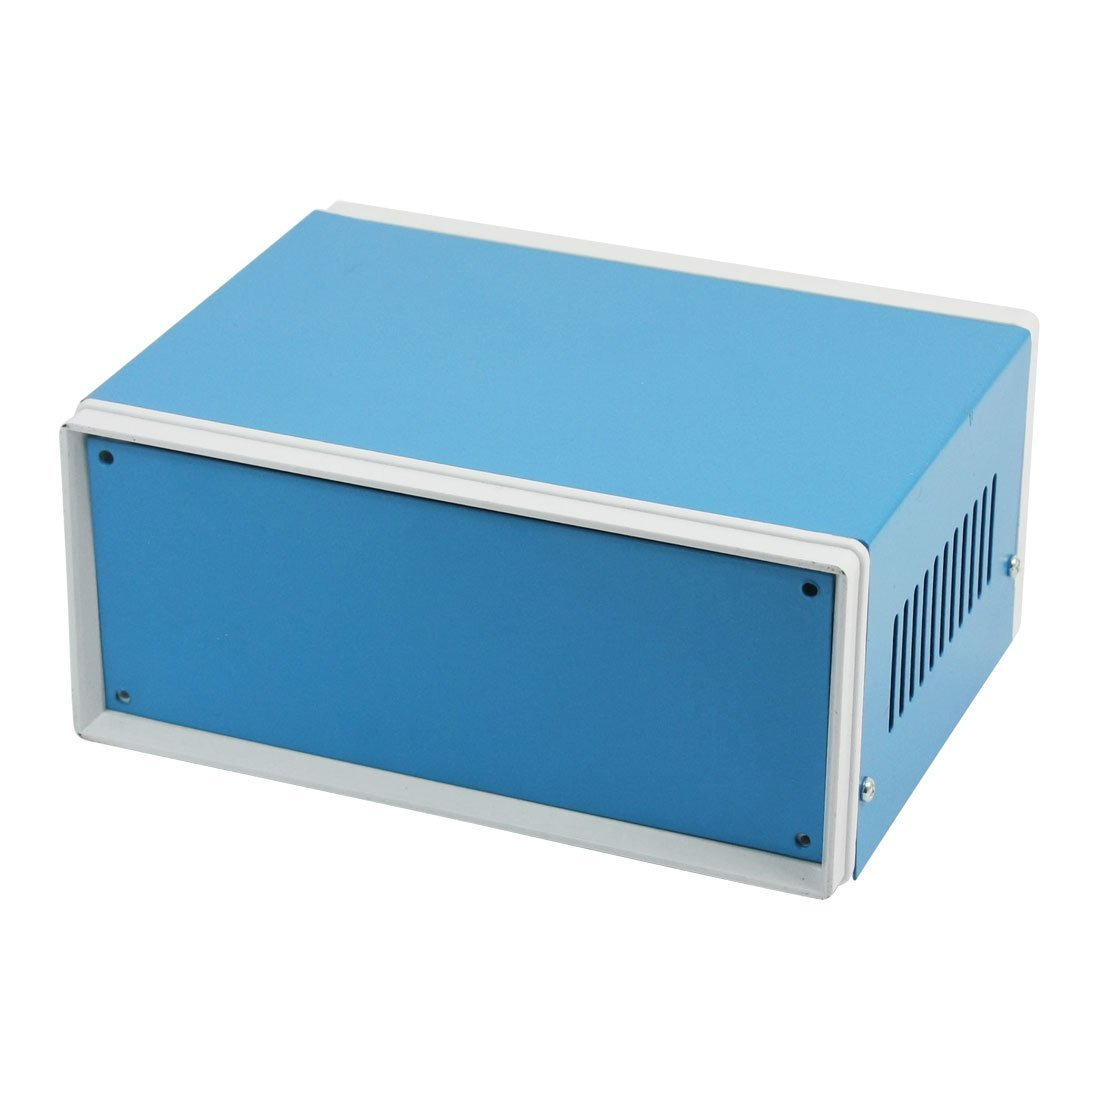 6.7 x 5.1 x 3.1 Blue Metal Enclosure Project Case DIY Junction Box 280 x 250 x 105mm blue metal enclosure project case diy junction box